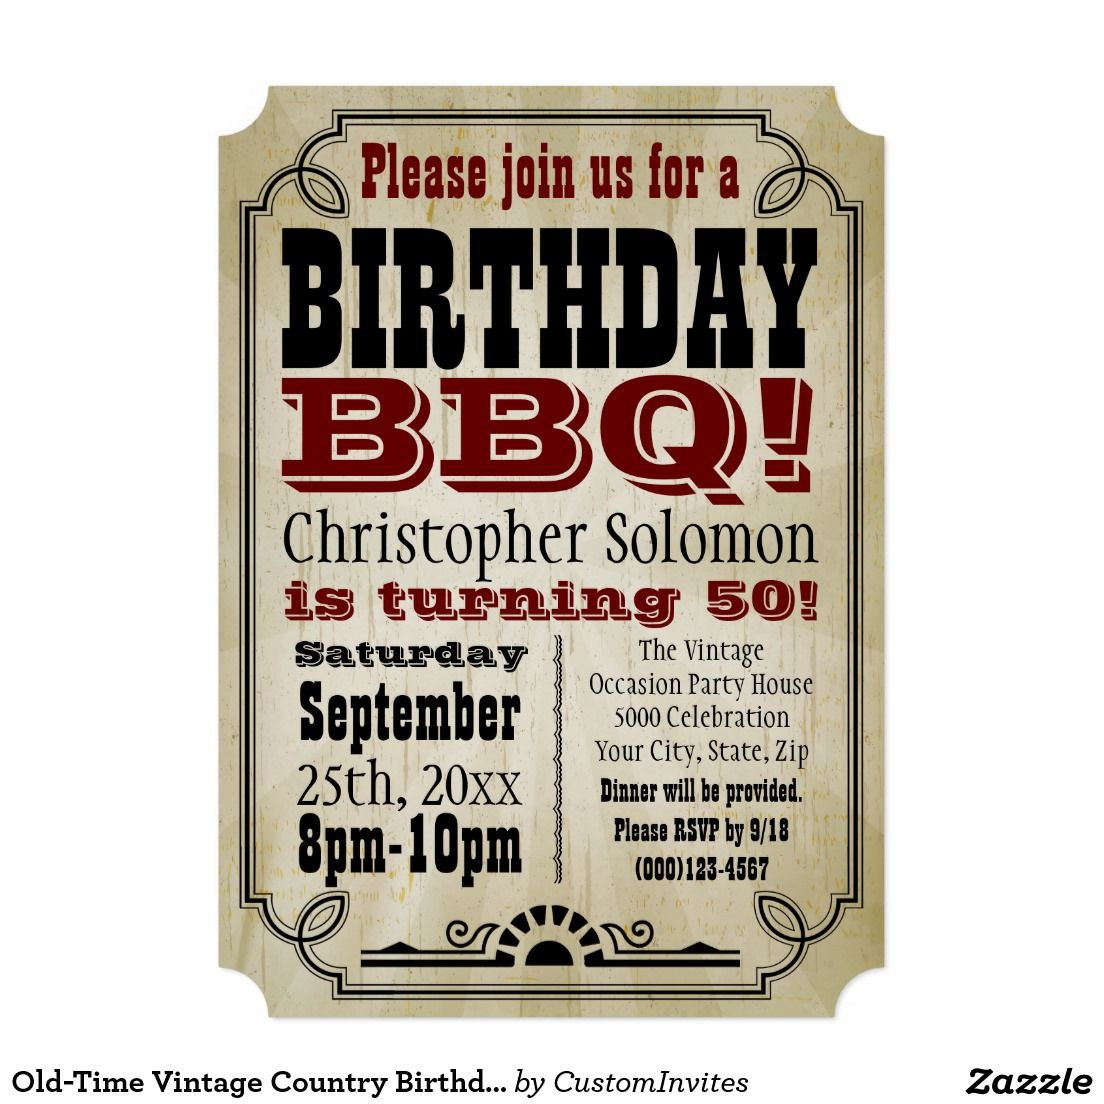 Old-Time Vintage Country Birthday BBQ Party Card | Country ...